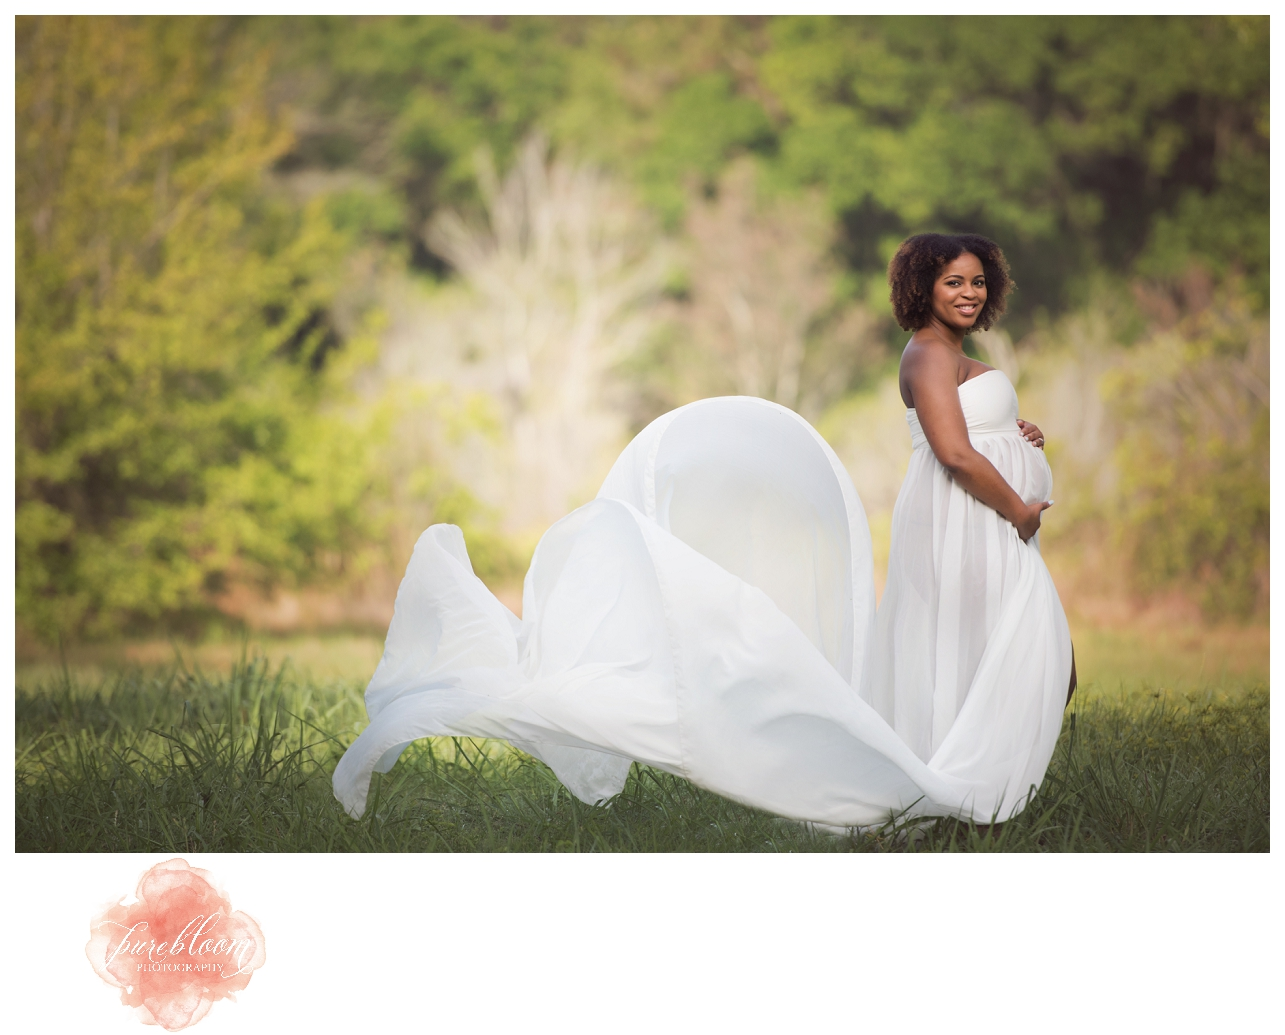 Tampa Artistic Maternity Photographer | Pure Bloom Photography | Ayesha & Nathan